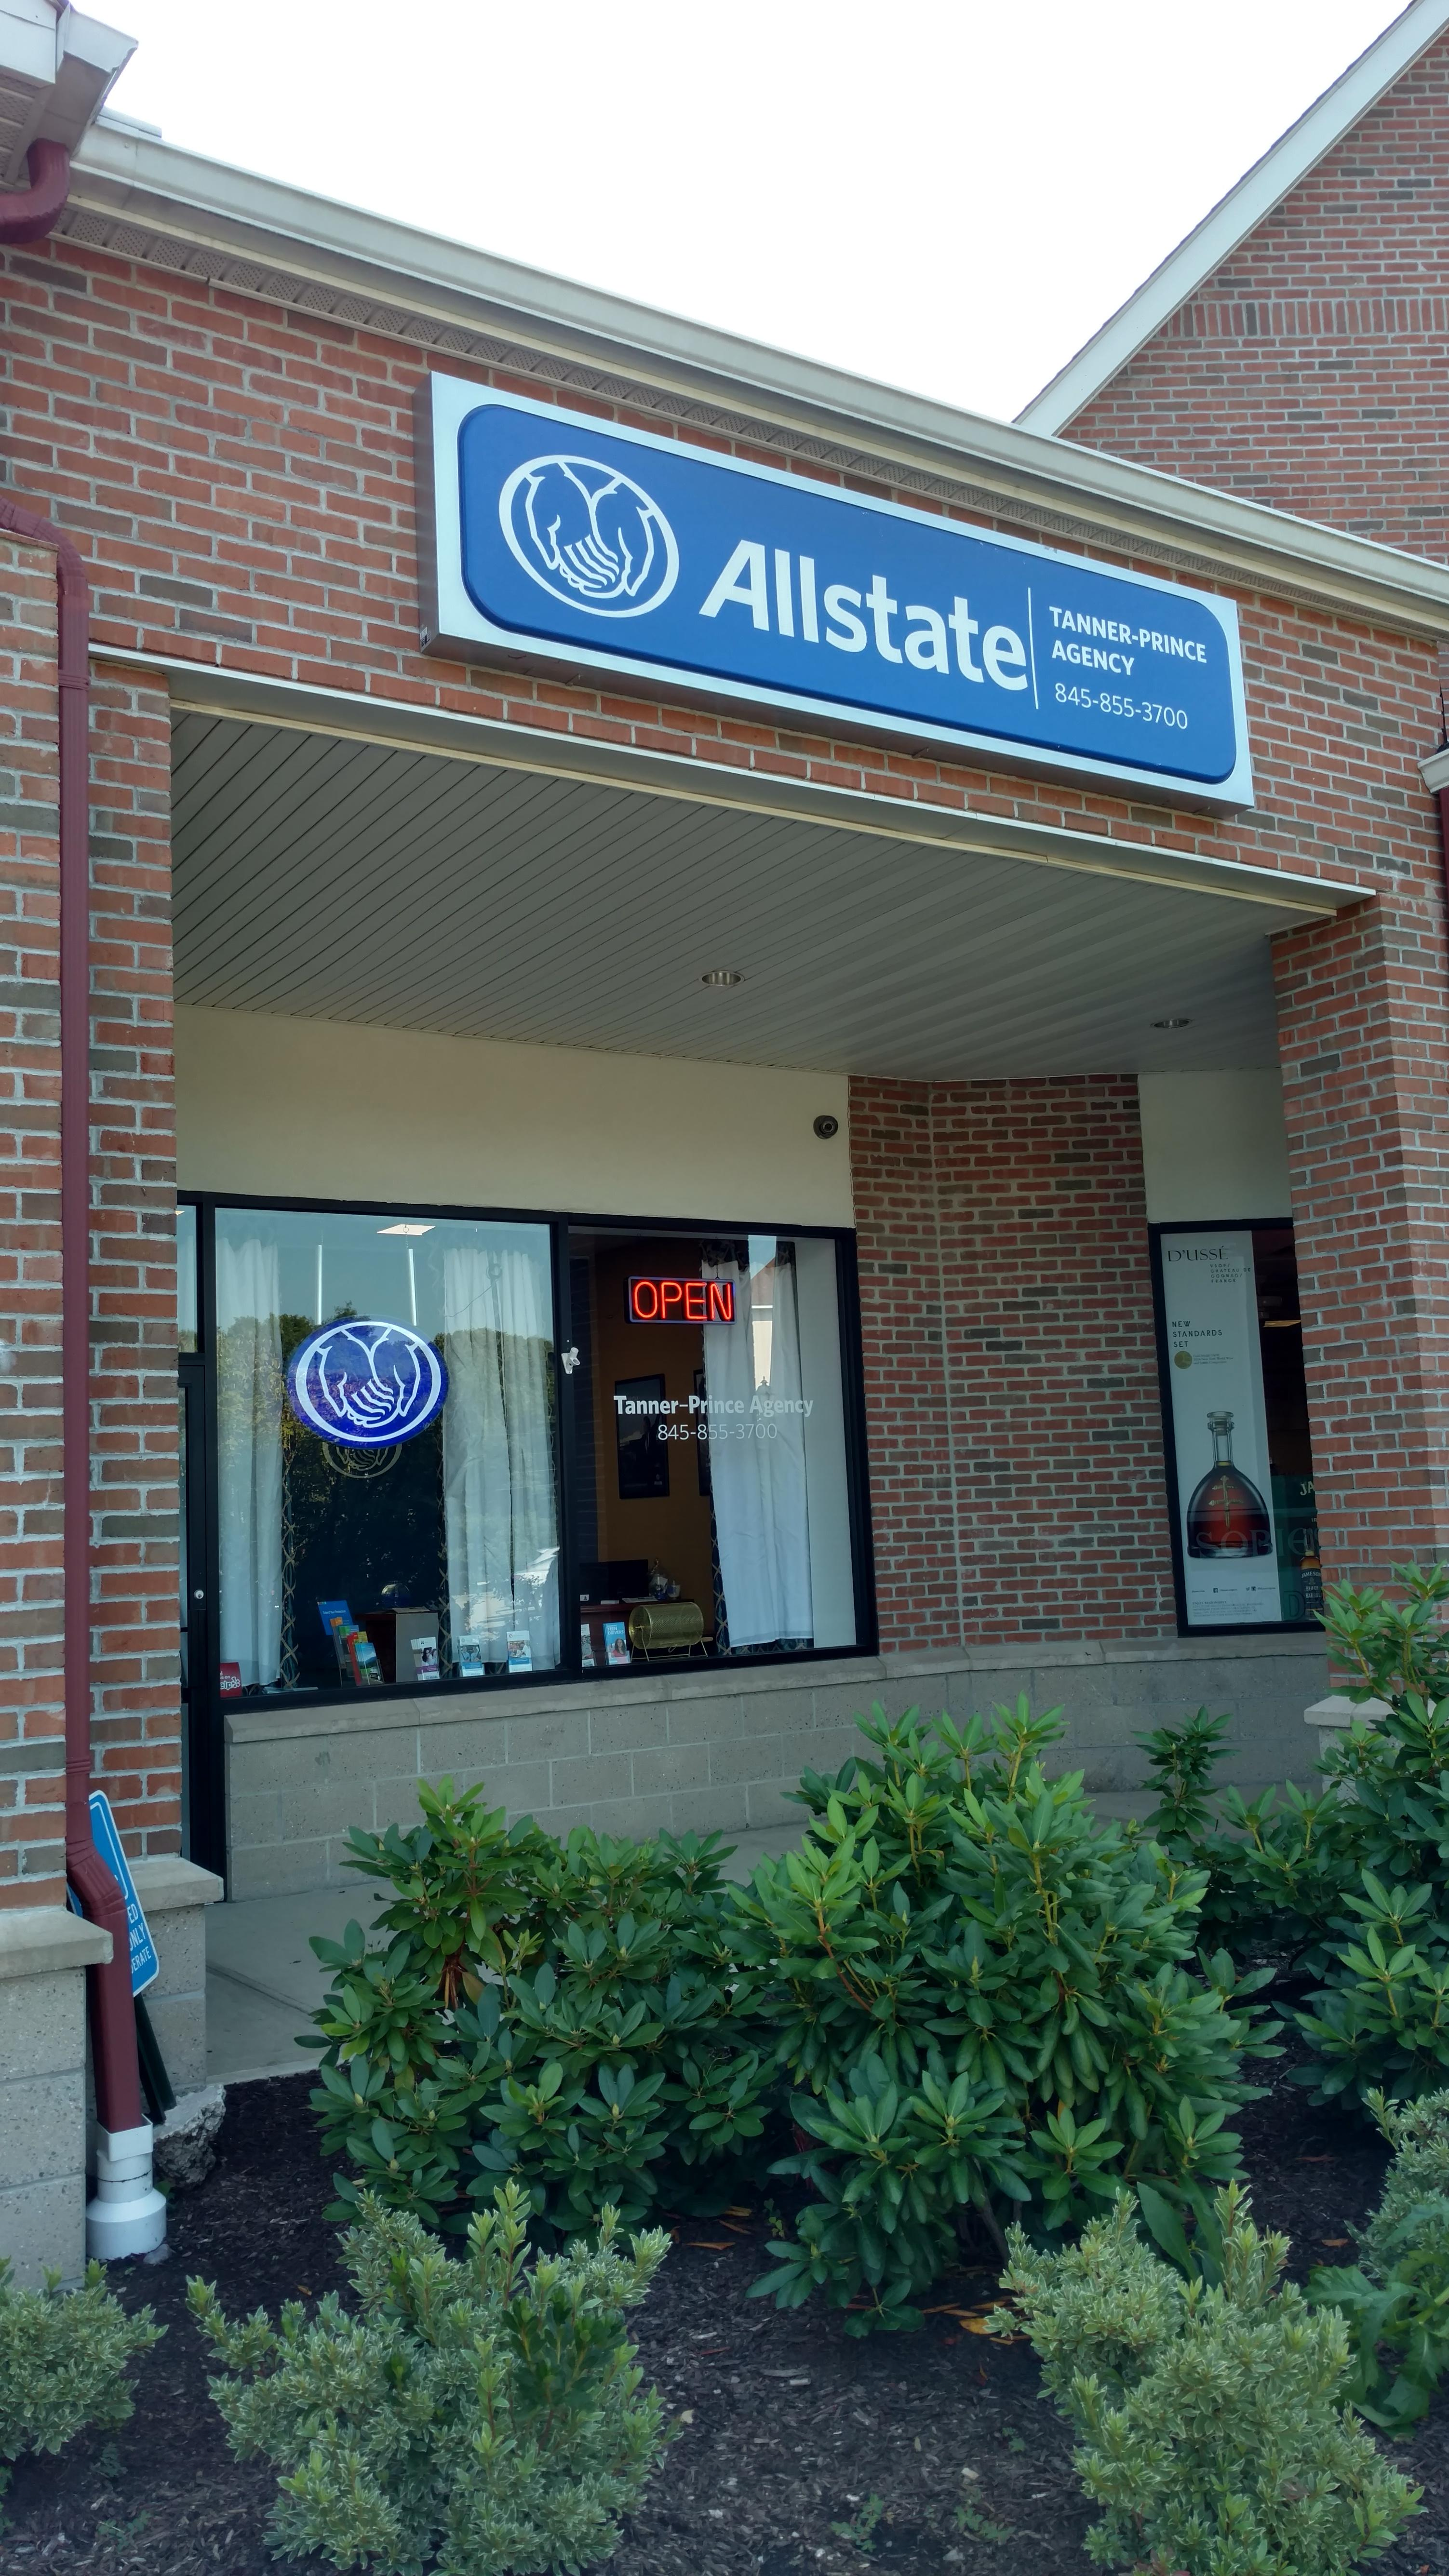 Allstate Insurance Agent: Janet Prince image 8